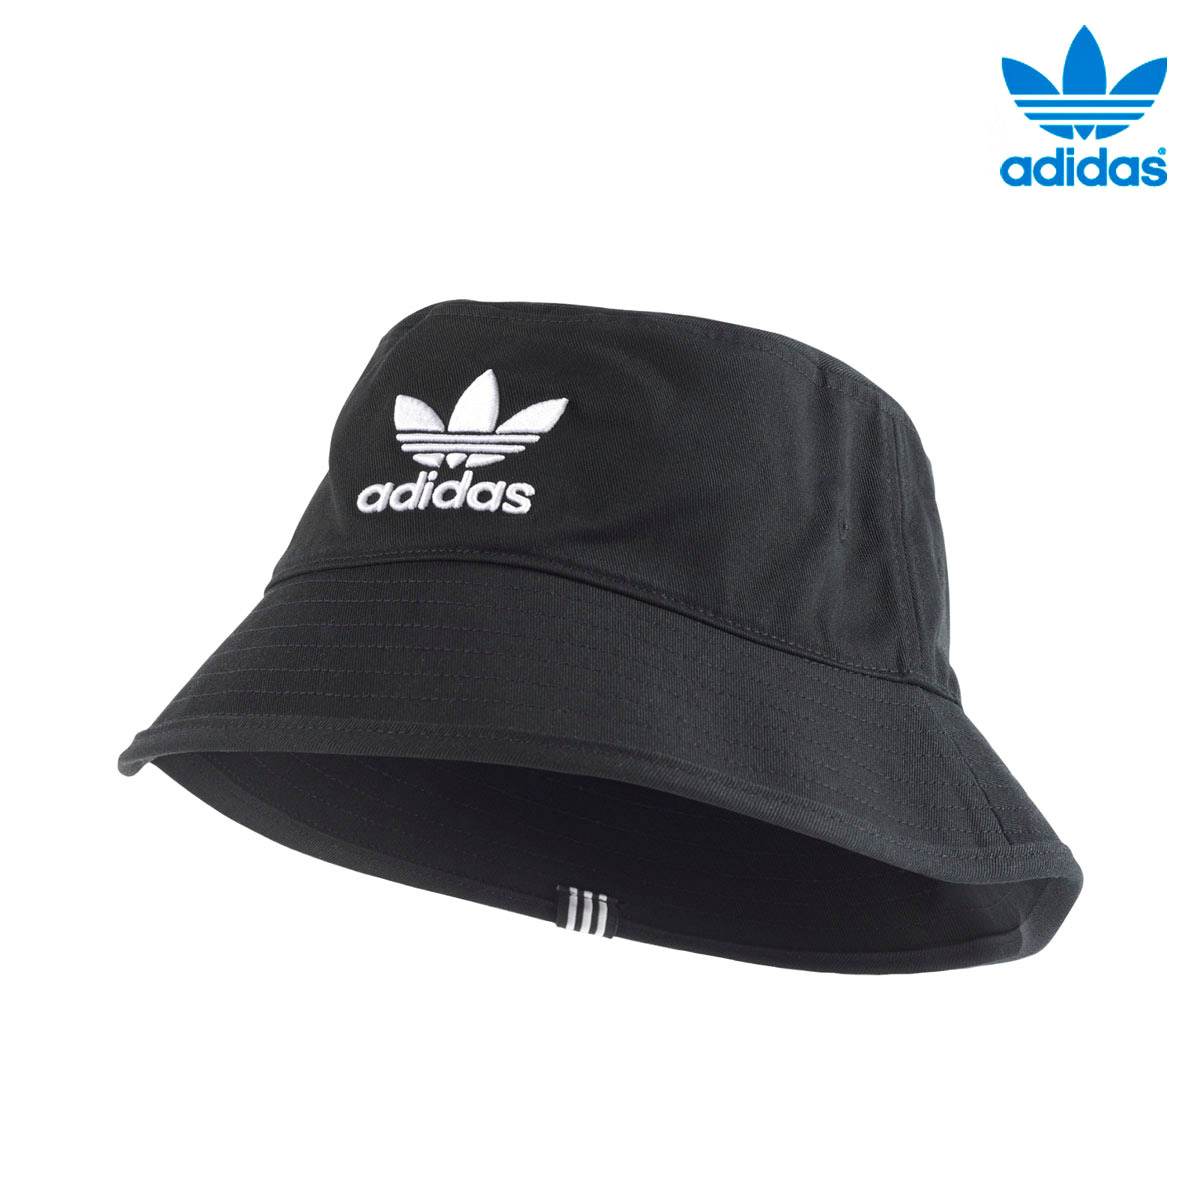 a2be3906a71 adidas Originals BUCKET HAT AC (Adidas original Suva blanket hat AC) BLACK  18SS-I